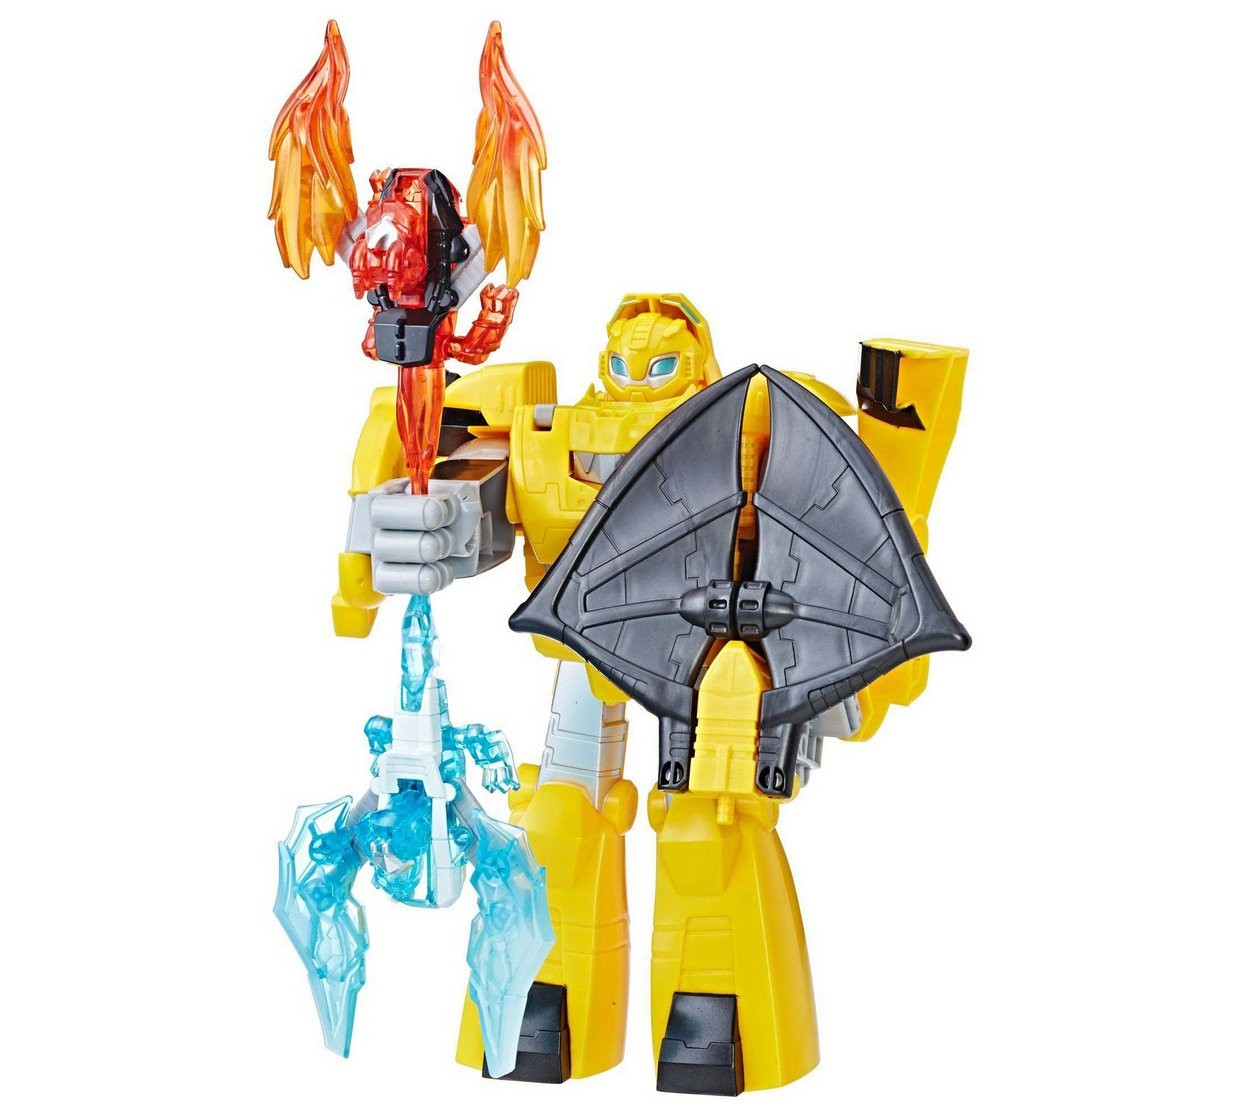 Transformers News: Re: Transformers: Rescue Bots Toy Products and Merchandise